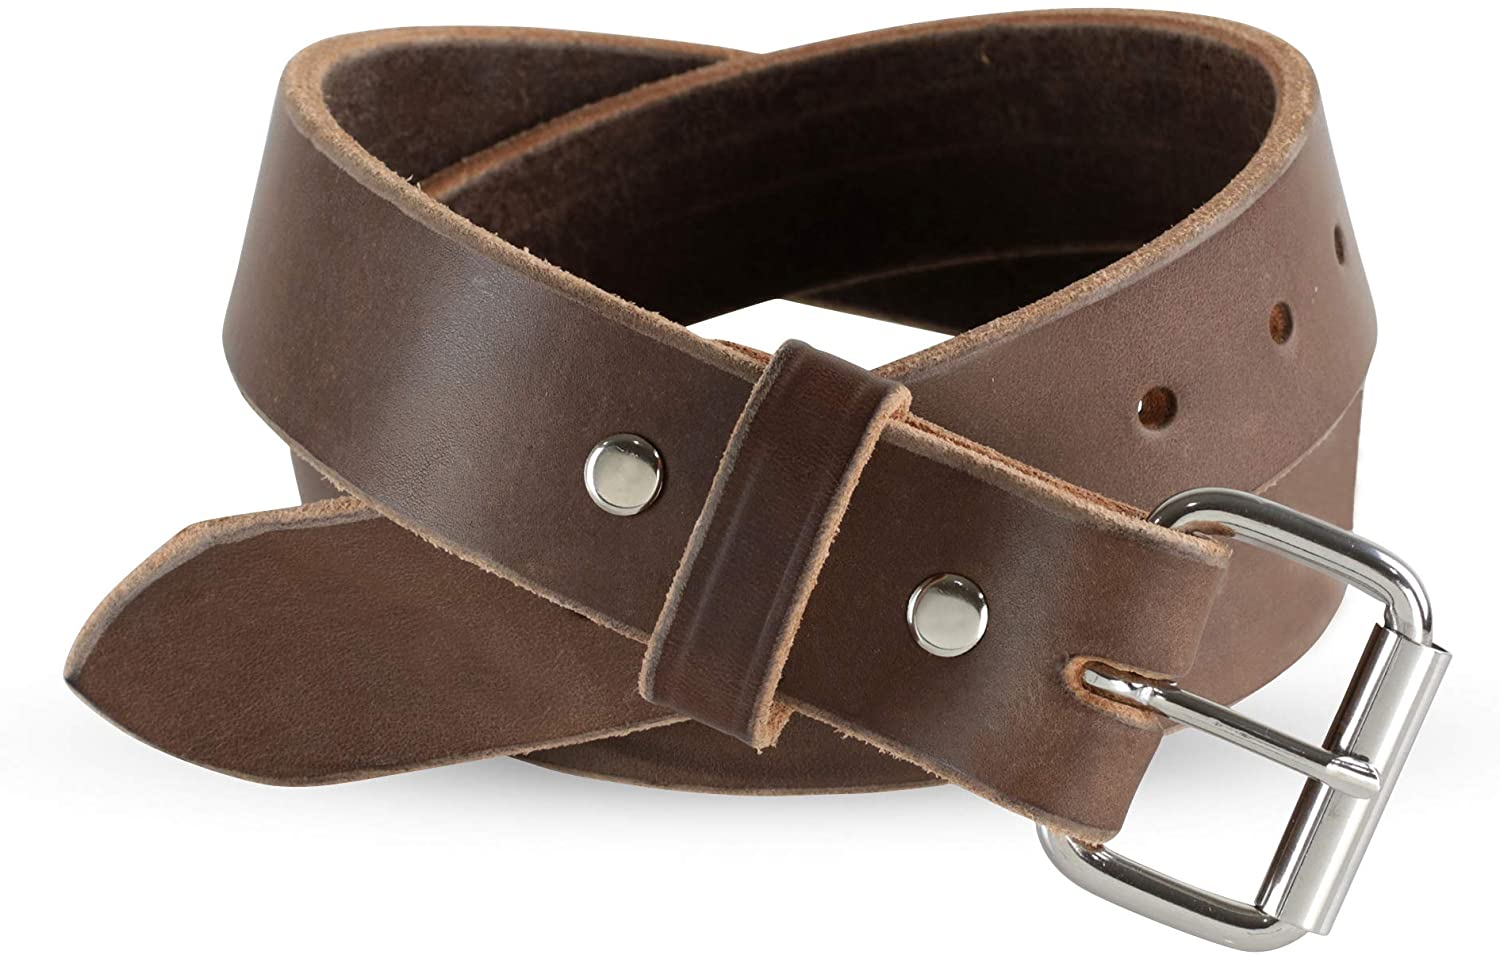 Heavy Duty Full Grain Leather Belt - 1.5 Inch Wide - Thick Leather - Made in USA